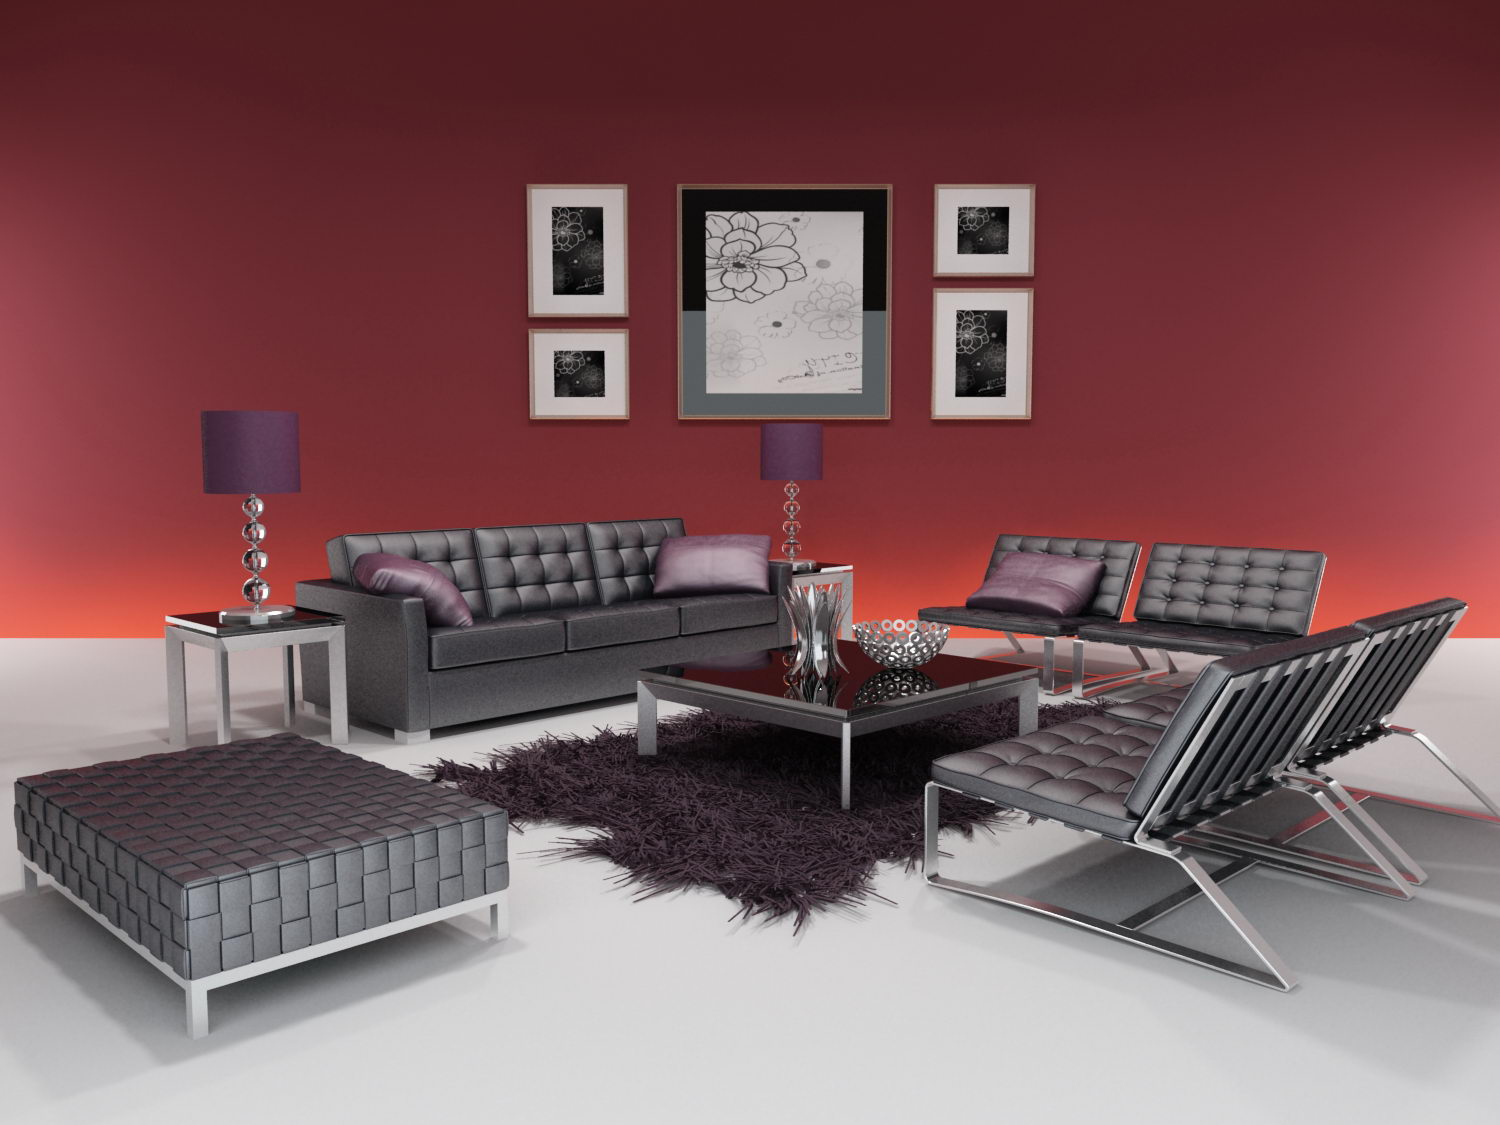 Link toUltra-modern minimalist sofa 3d model (including materials)